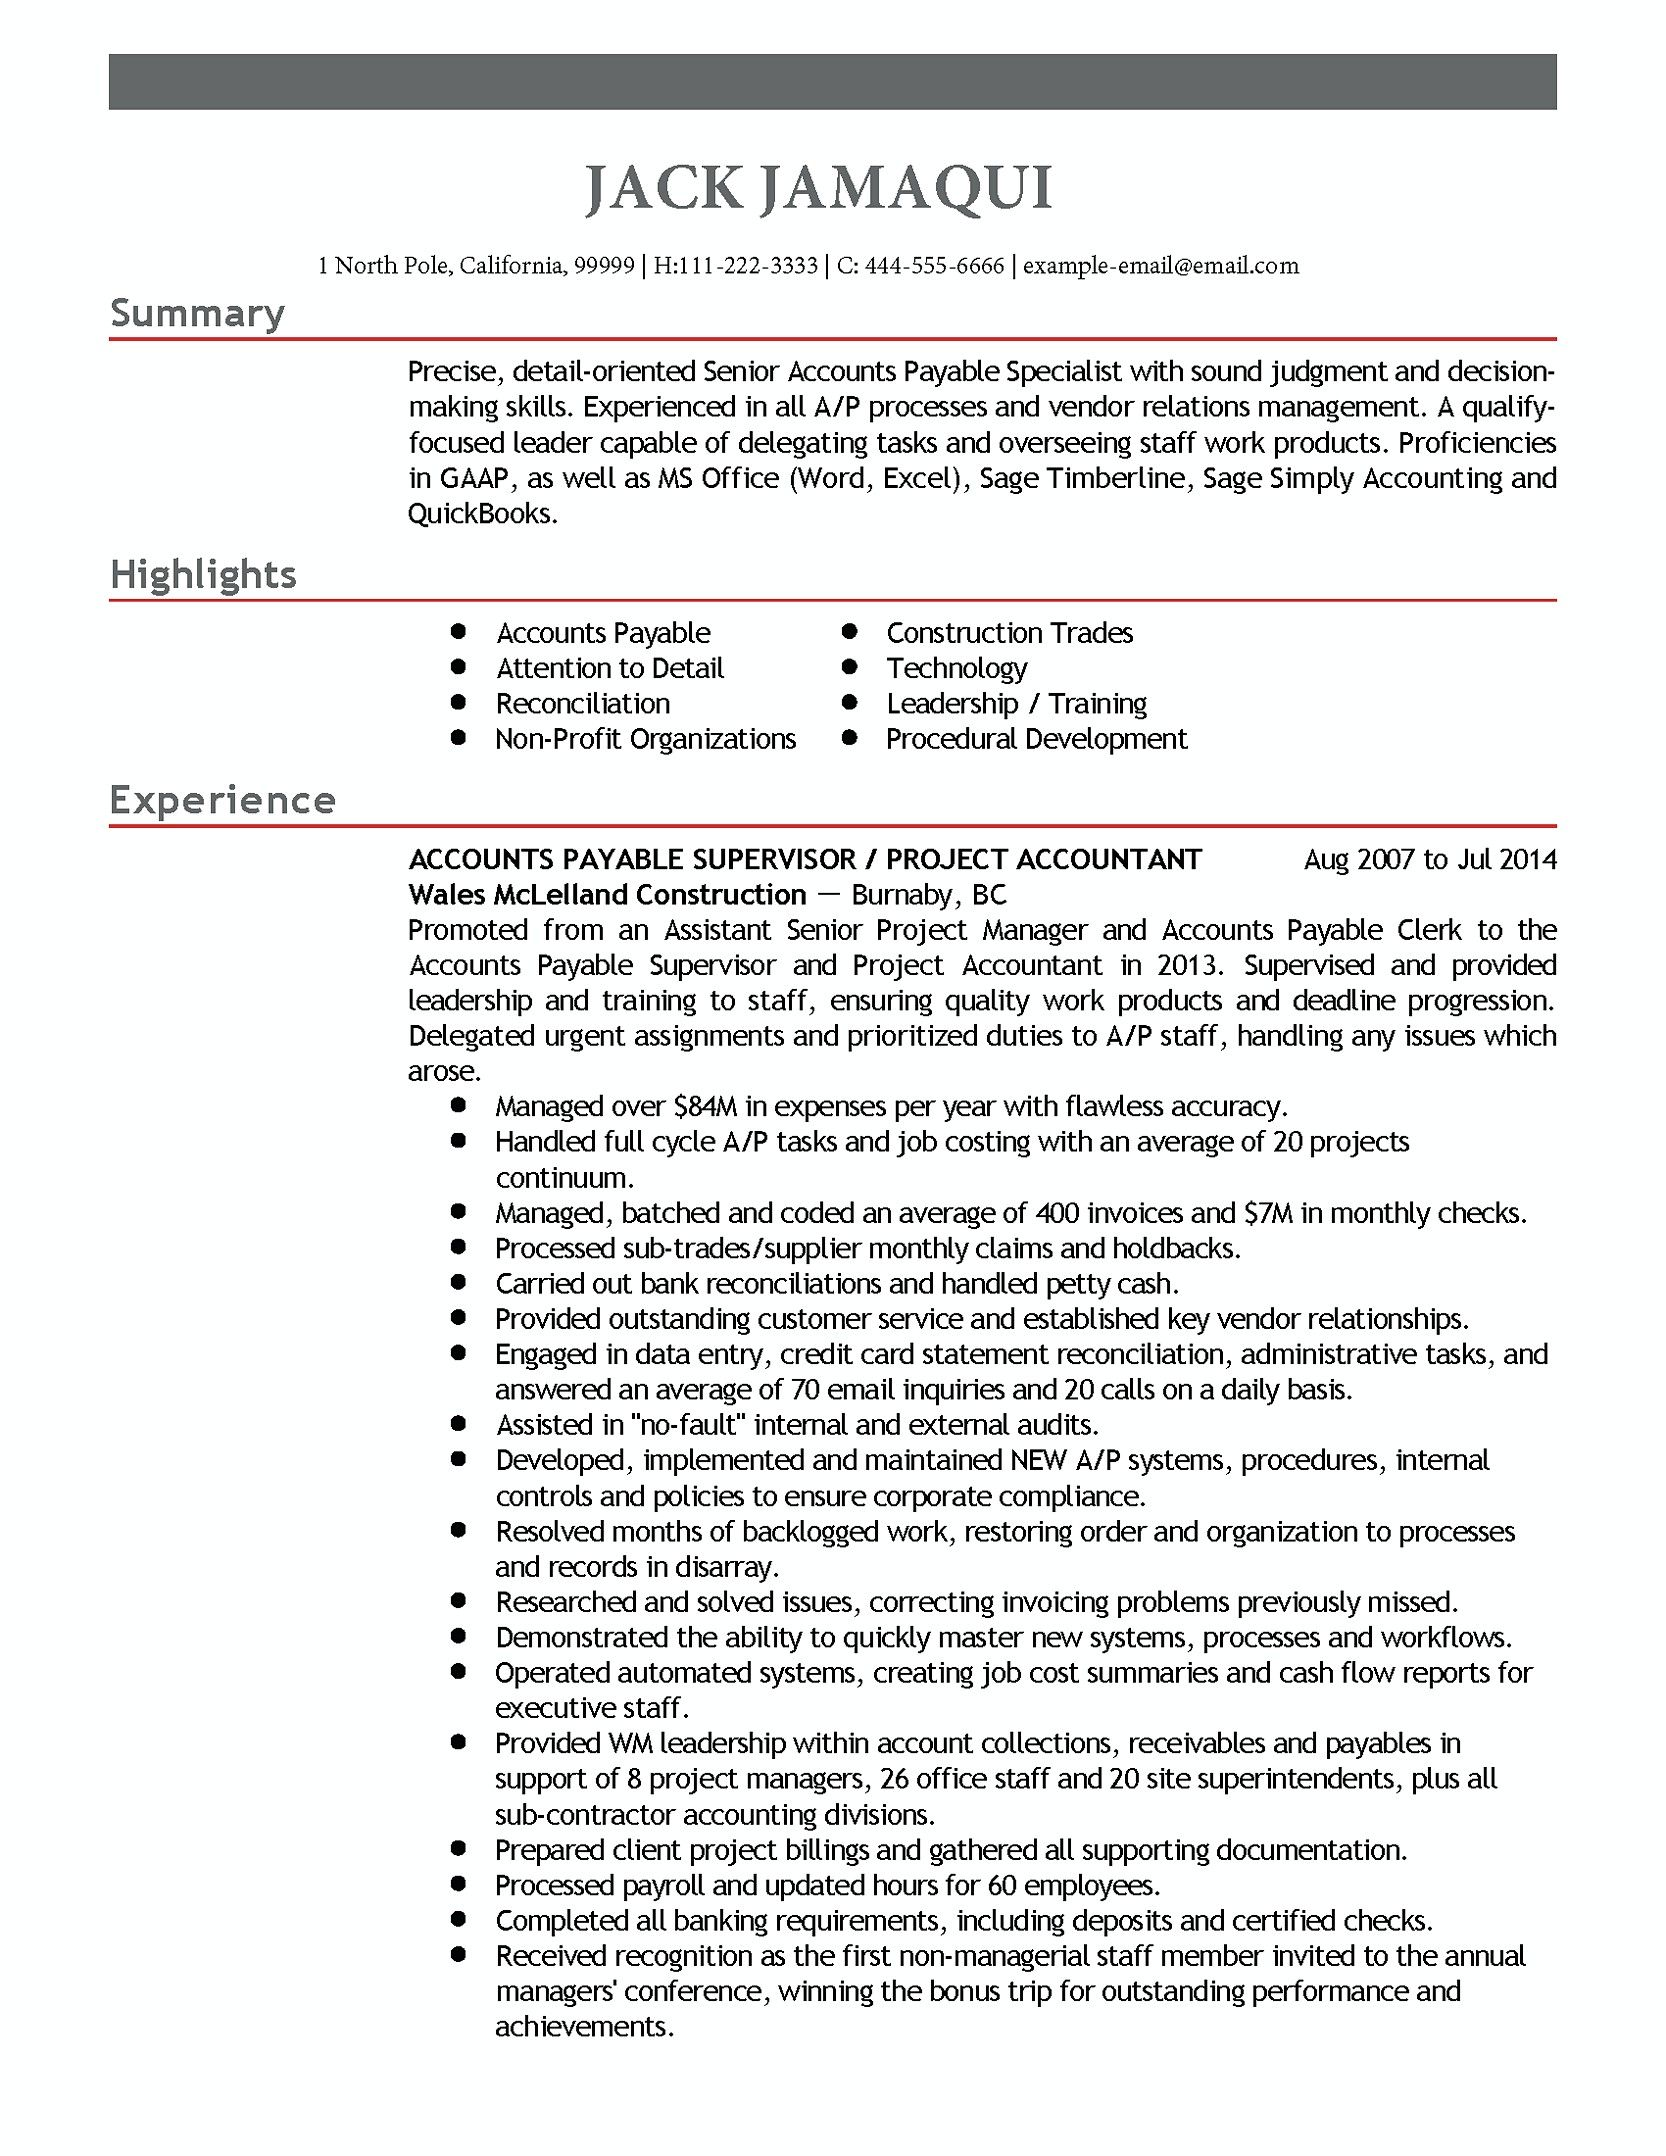 Resume Format For Accounts Manager Accounts Payable Manager Resume Accounts Payable Manager